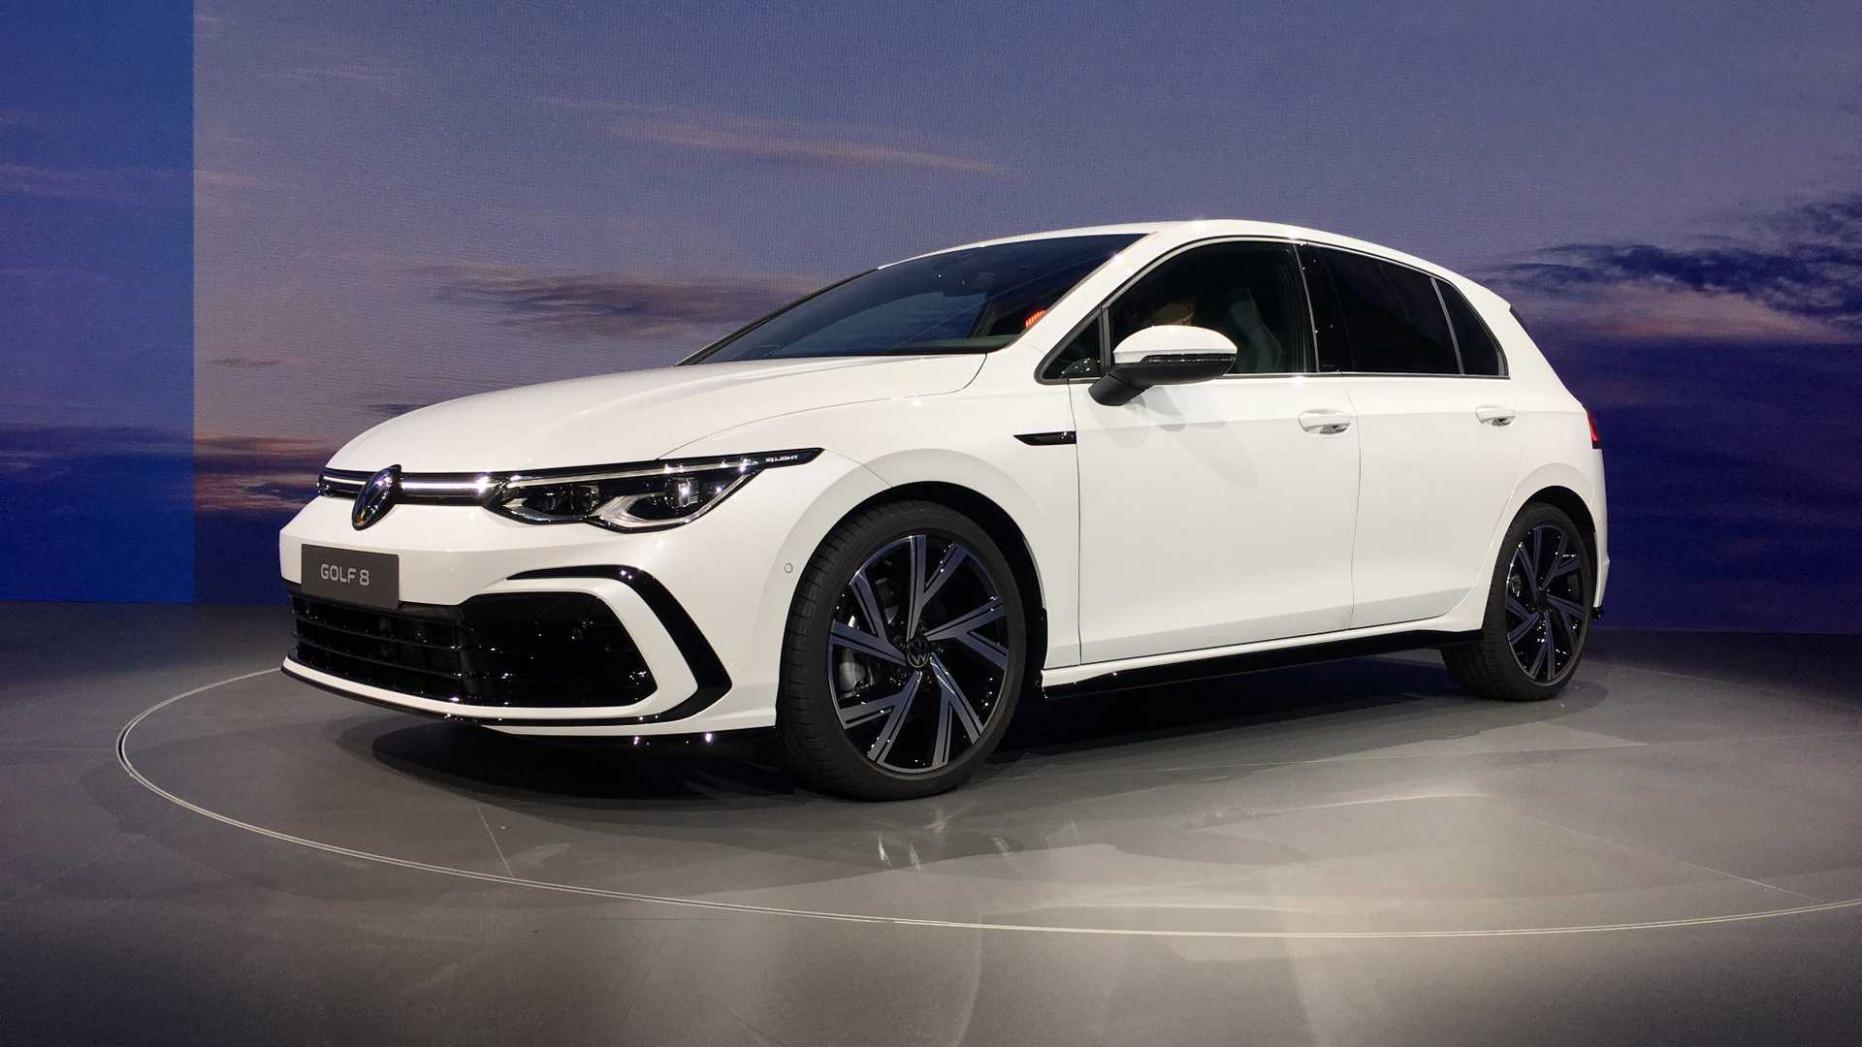 7 Volkswagen Golf Ushers In Eighth Generation With 7 Power Options